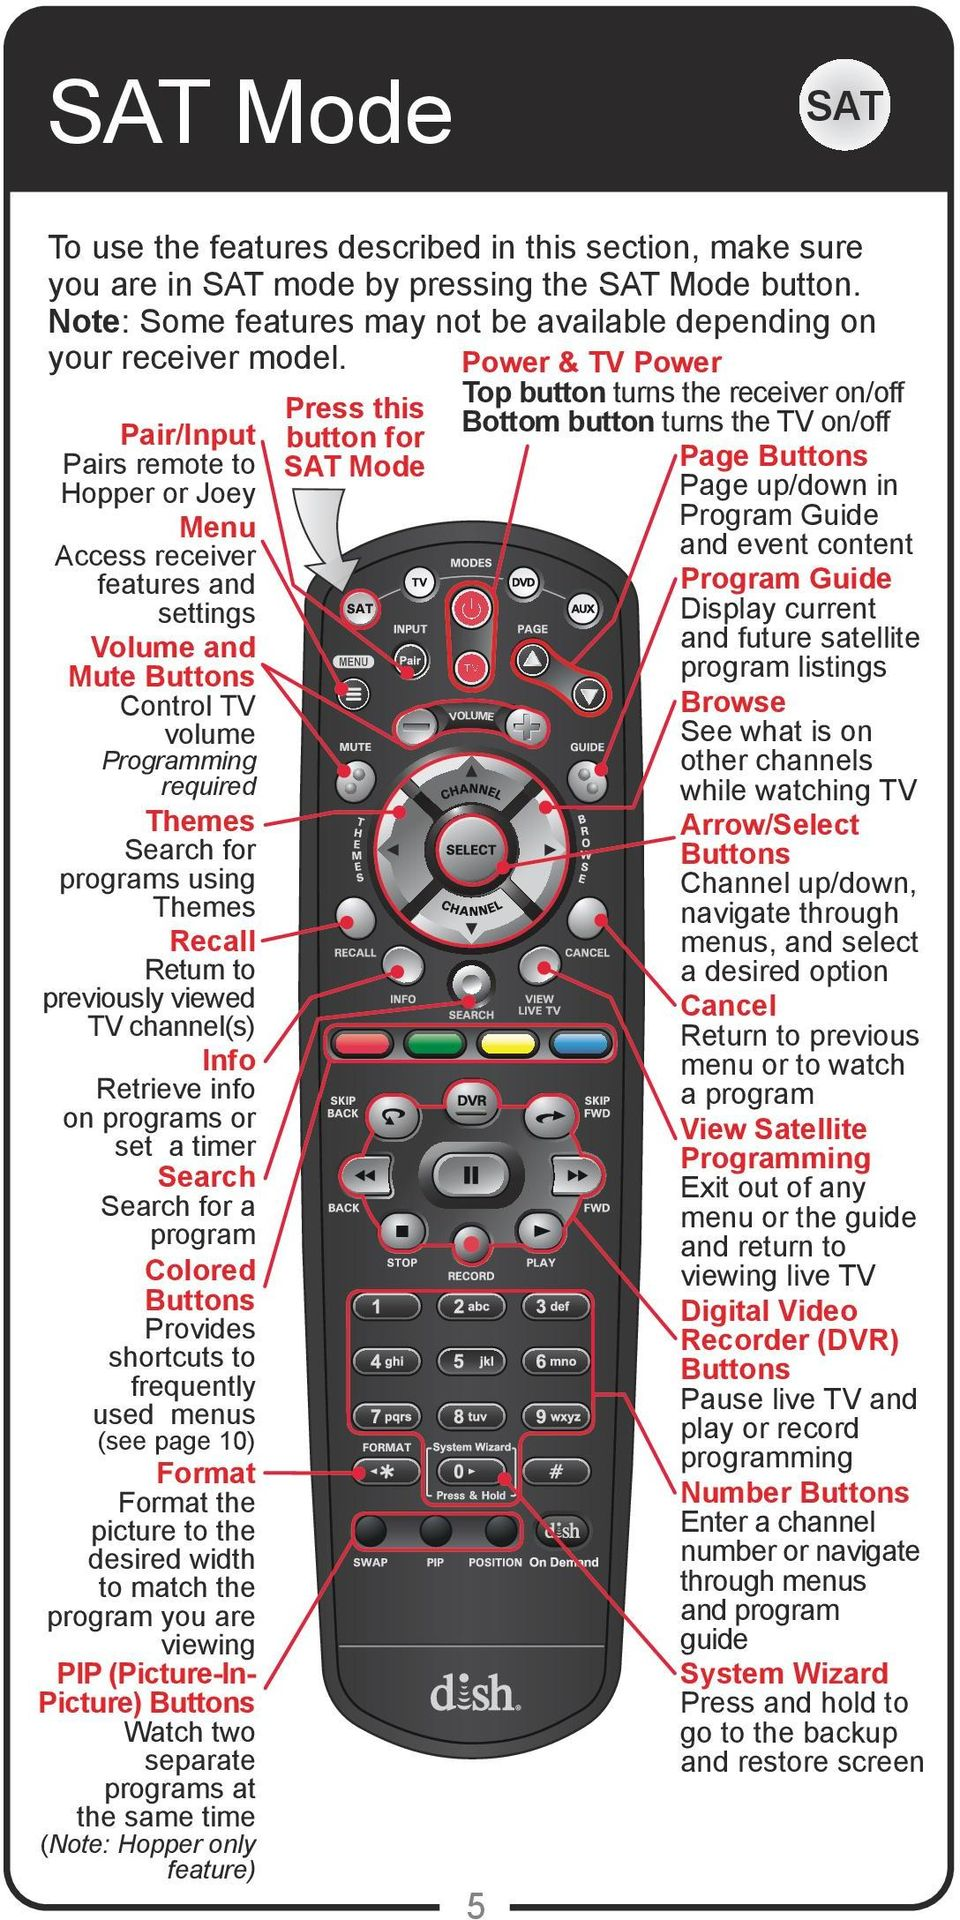 Return to previously viewed TV channel(s) Info Retrieve info on programs or set a timer Search Search for a program Colored Buttons Provides shortcuts to frequently used menus (see page 10) Format